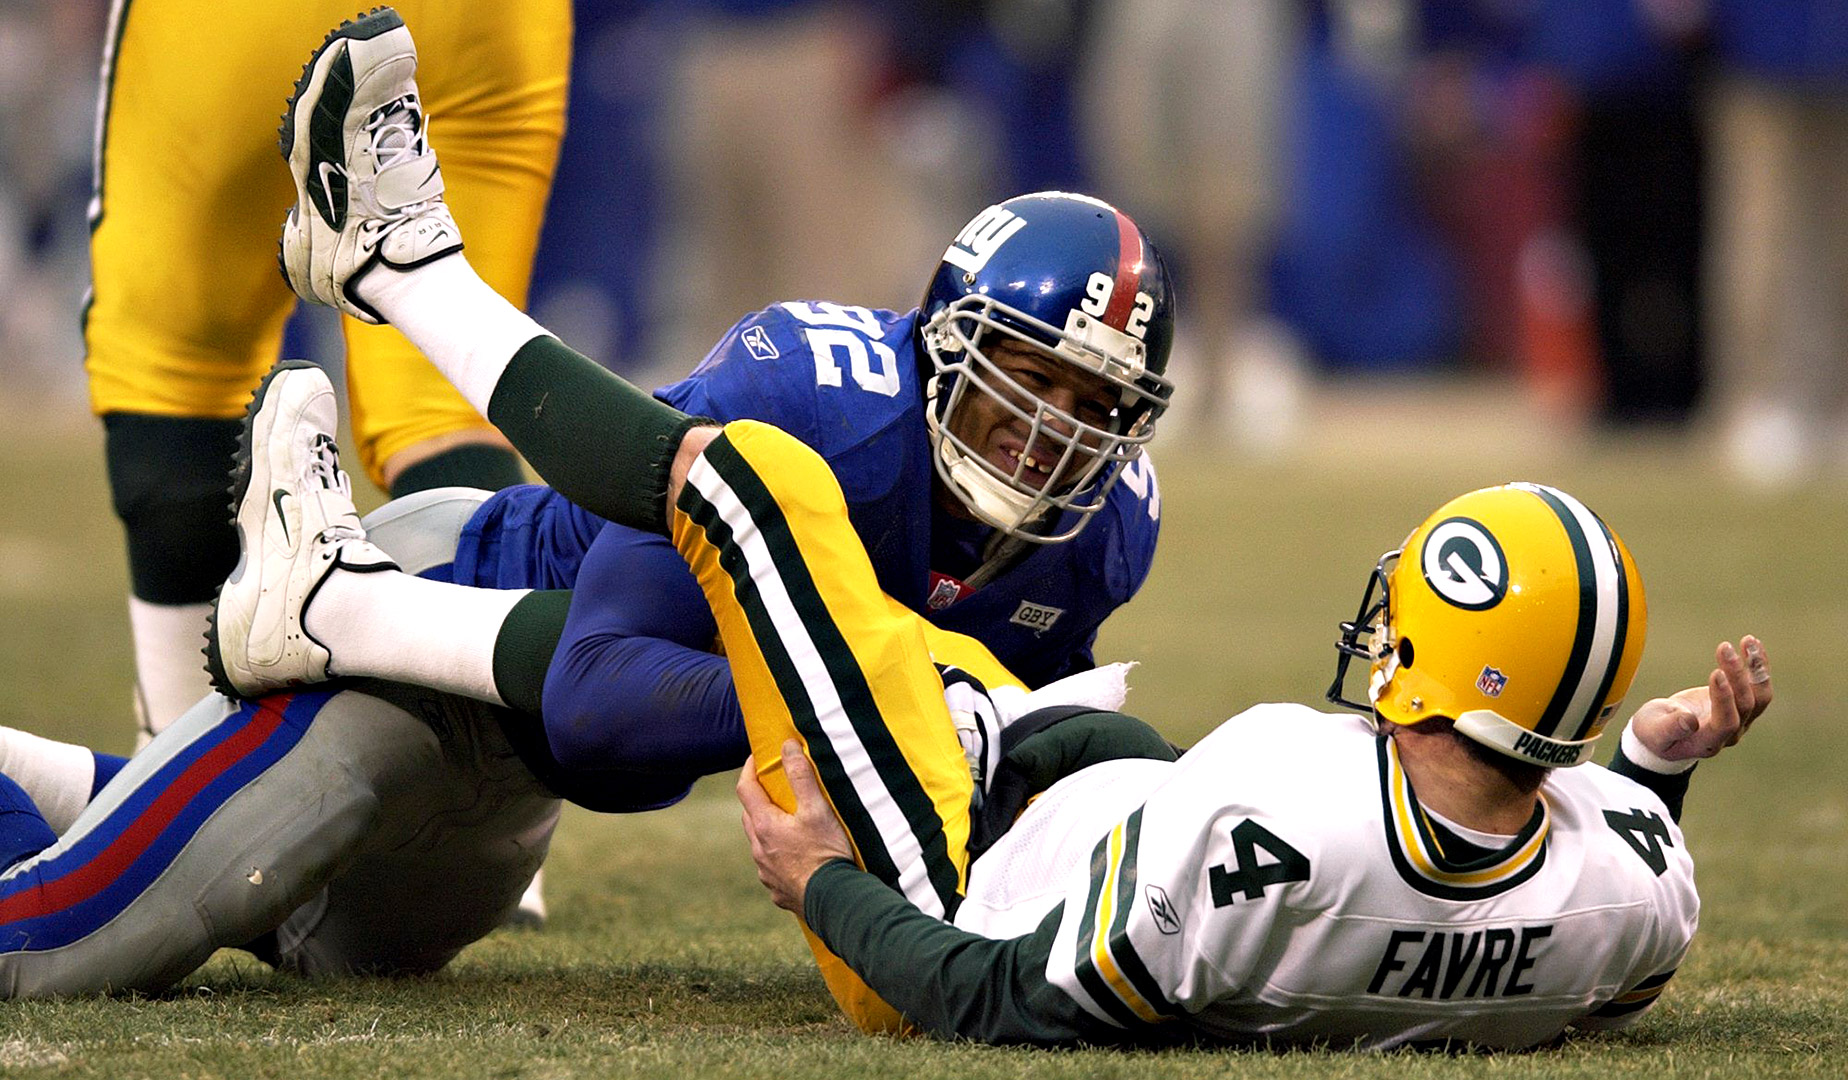 Michael Strahan's record-breaking sack of Brett Favre in 2001 has been called a lot of things, but both Favre and Strahan insist it was legit. Strahan's record of 22.5 sacks in a single season still stands today.